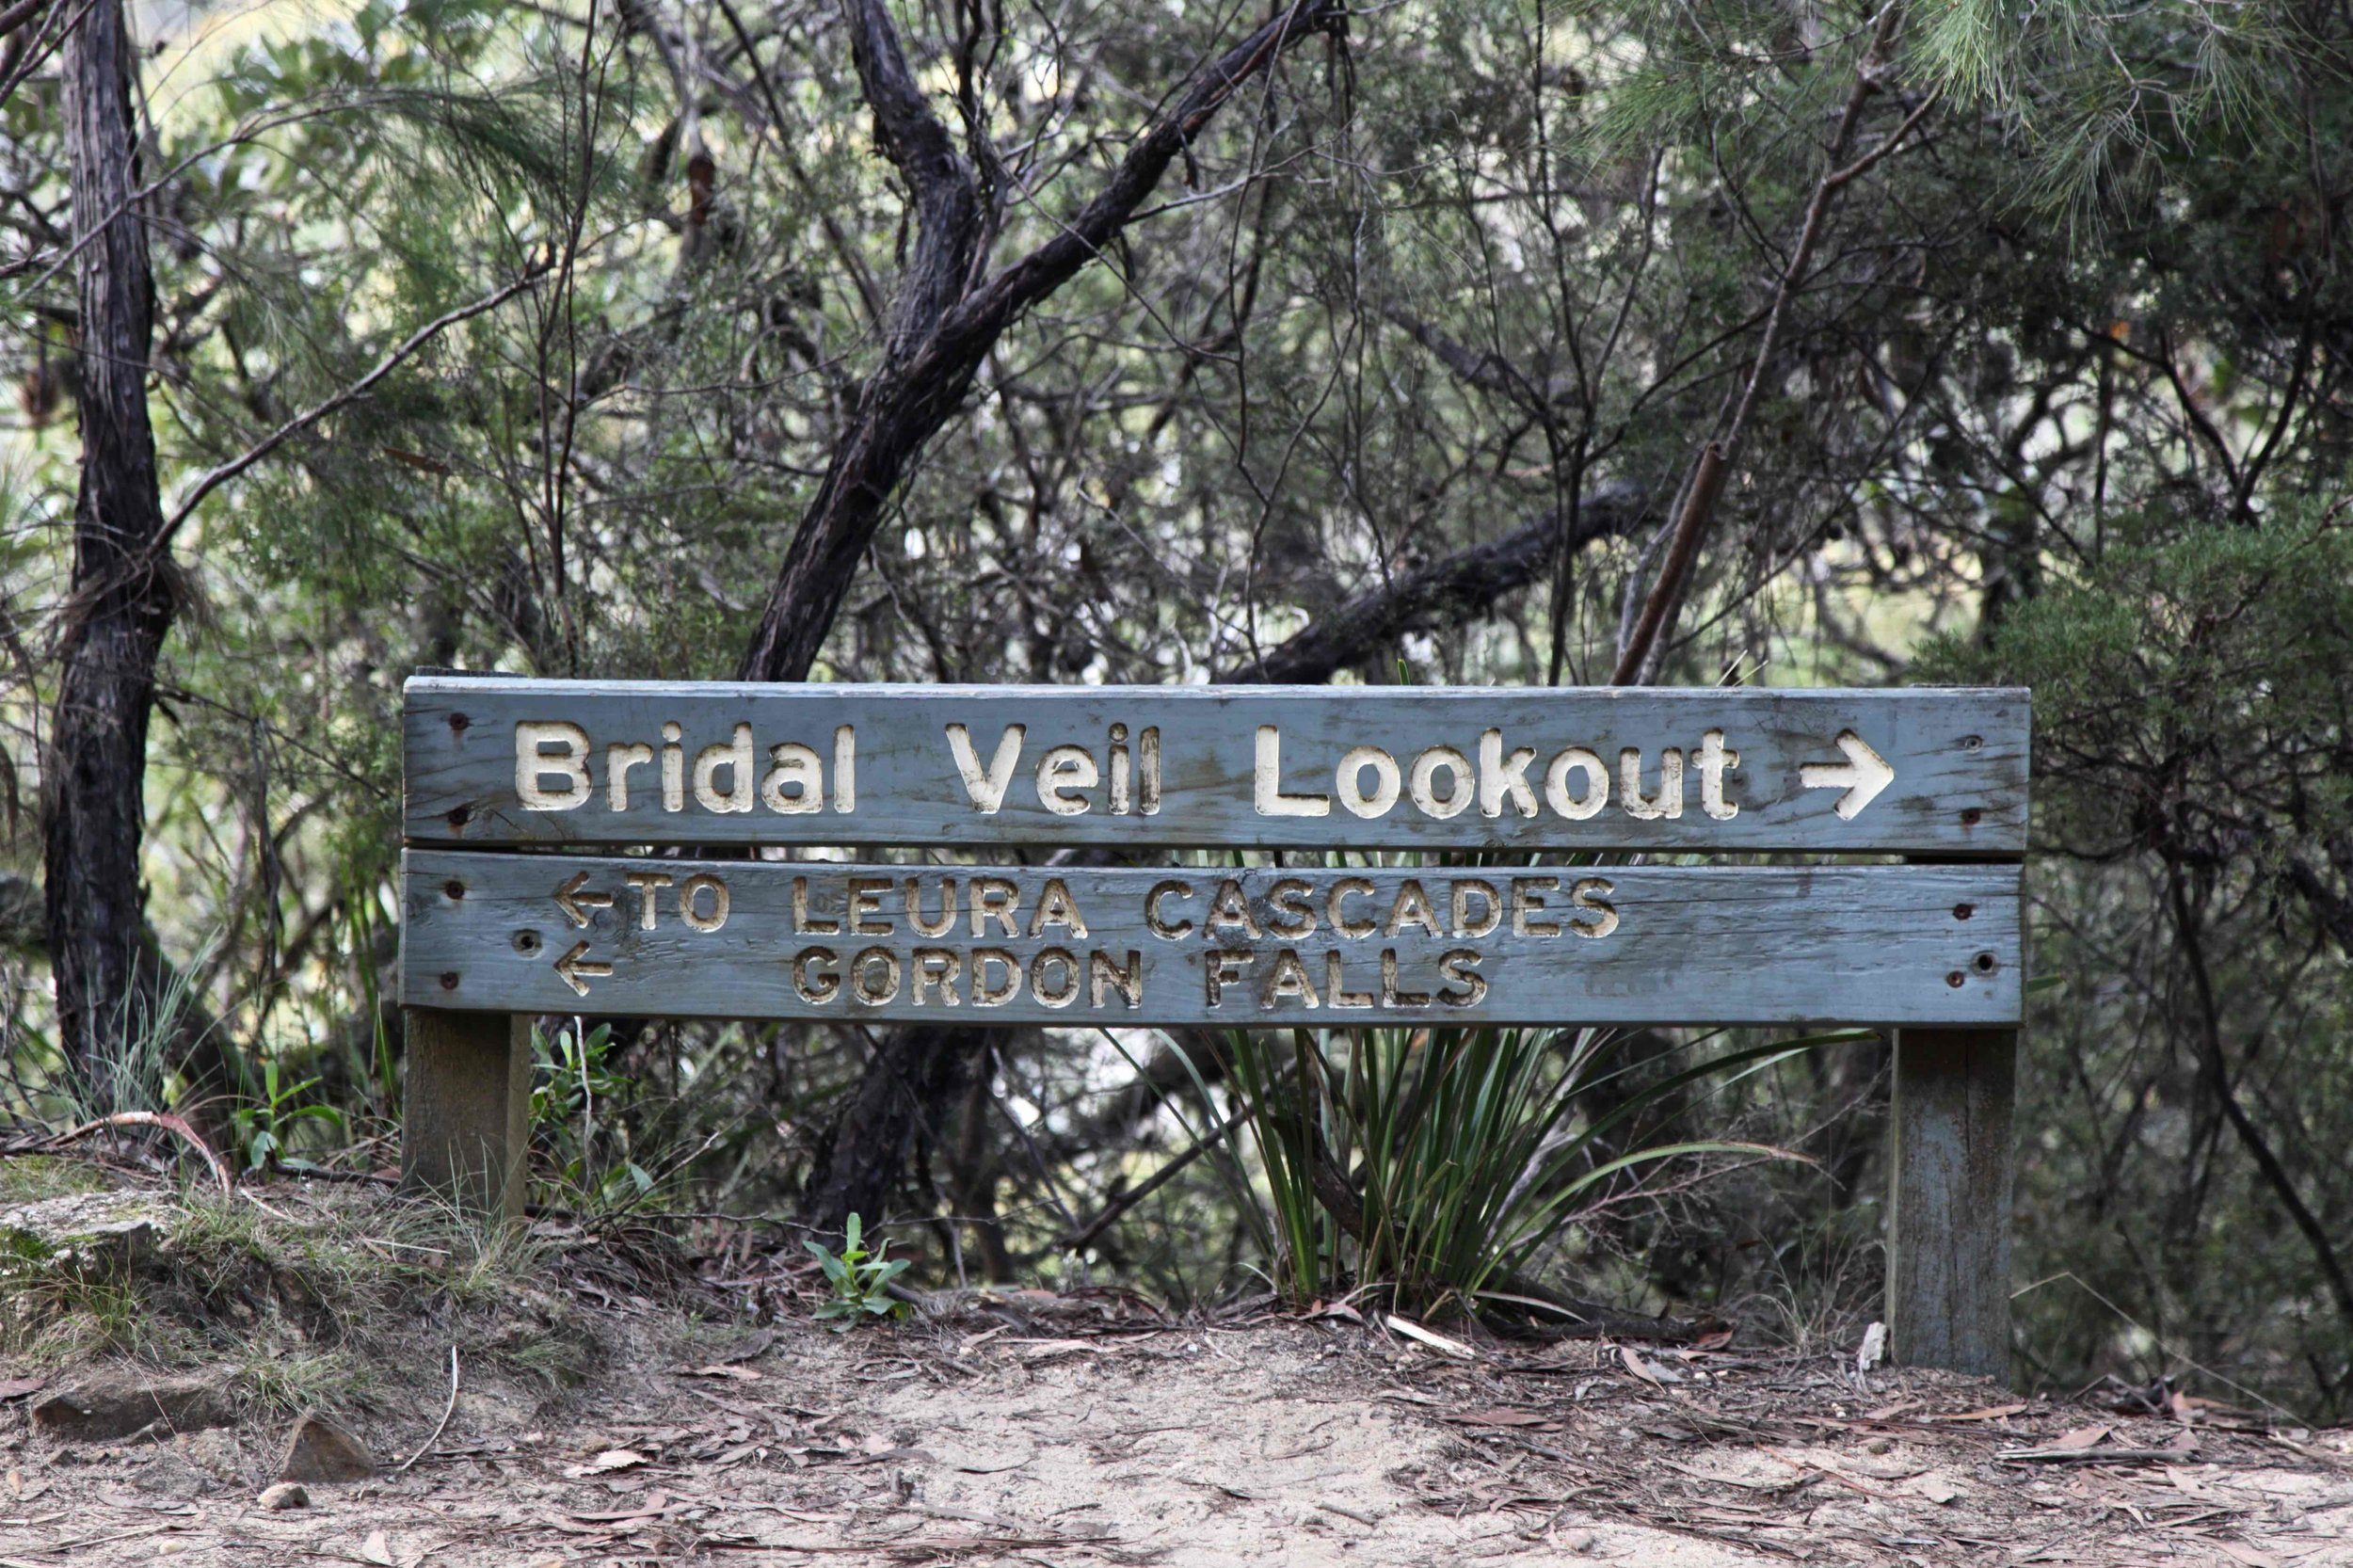 You can spend time at more than 20 lookouts along the track between Katoomba and Leura.